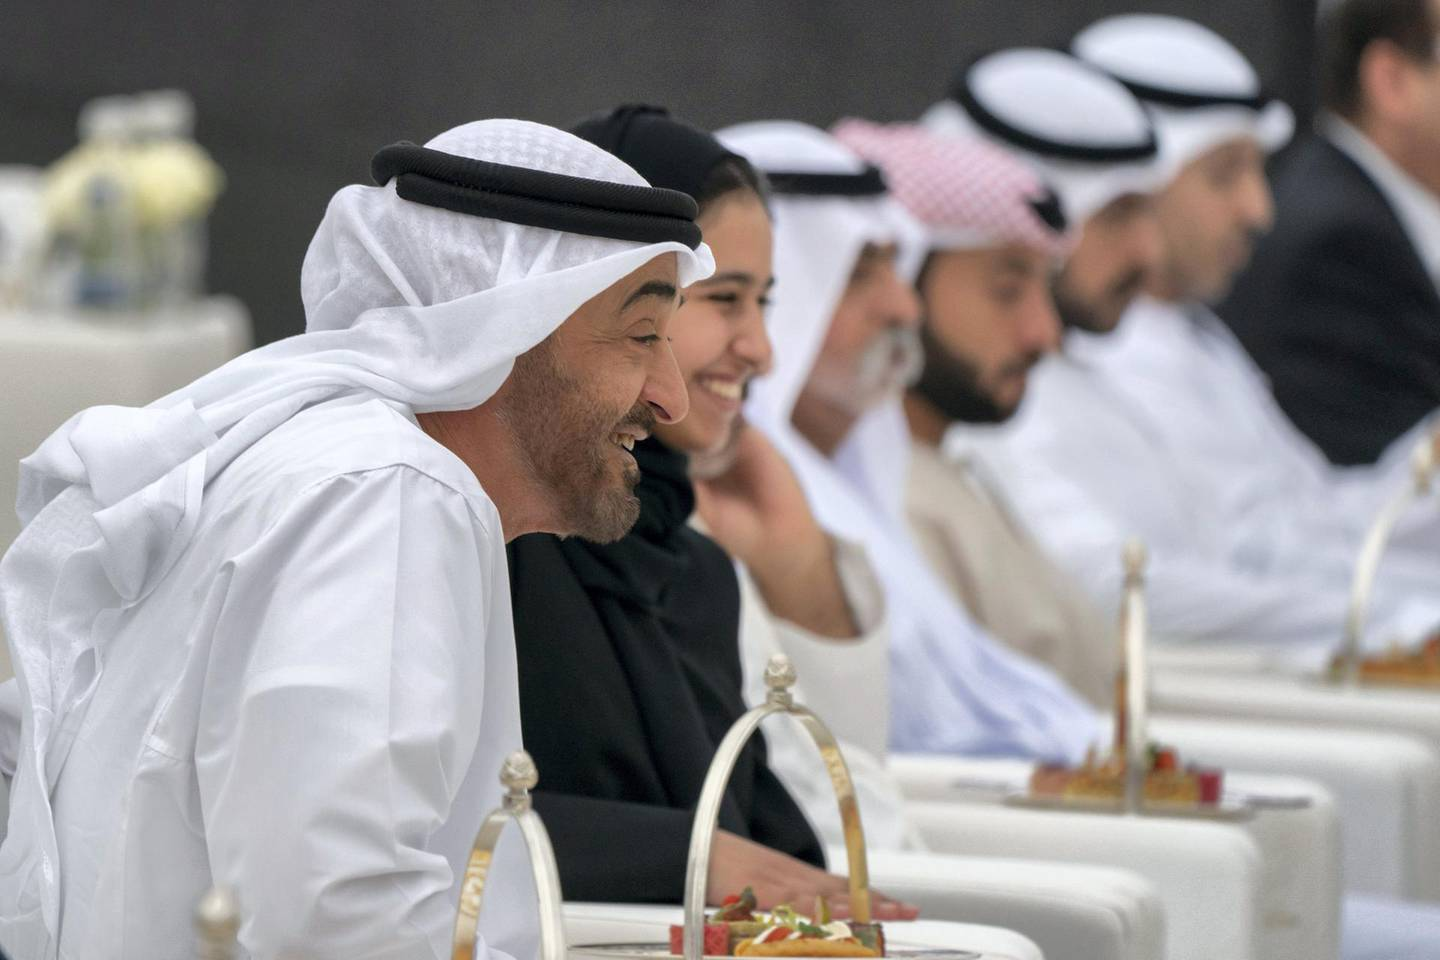 ABU DHABI, UNITED ARAB EMIRATES - March 23, 2019: HH Sheikh Mohamed bin Zayed Al Nahyan, Crown Prince of Abu Dhabi and Deputy Supreme Commander of the UAE Armed Forces (L) and HH Sheikha Hassa bint Mohamed bin Zayed Al Nahyan (2nd L), watch an equestrian performance by the Spanish Riding School of Vienna, at Emirates Palace.  ( Mohamed Al Hammadi / Ministry of Presidential Affairs ) ---